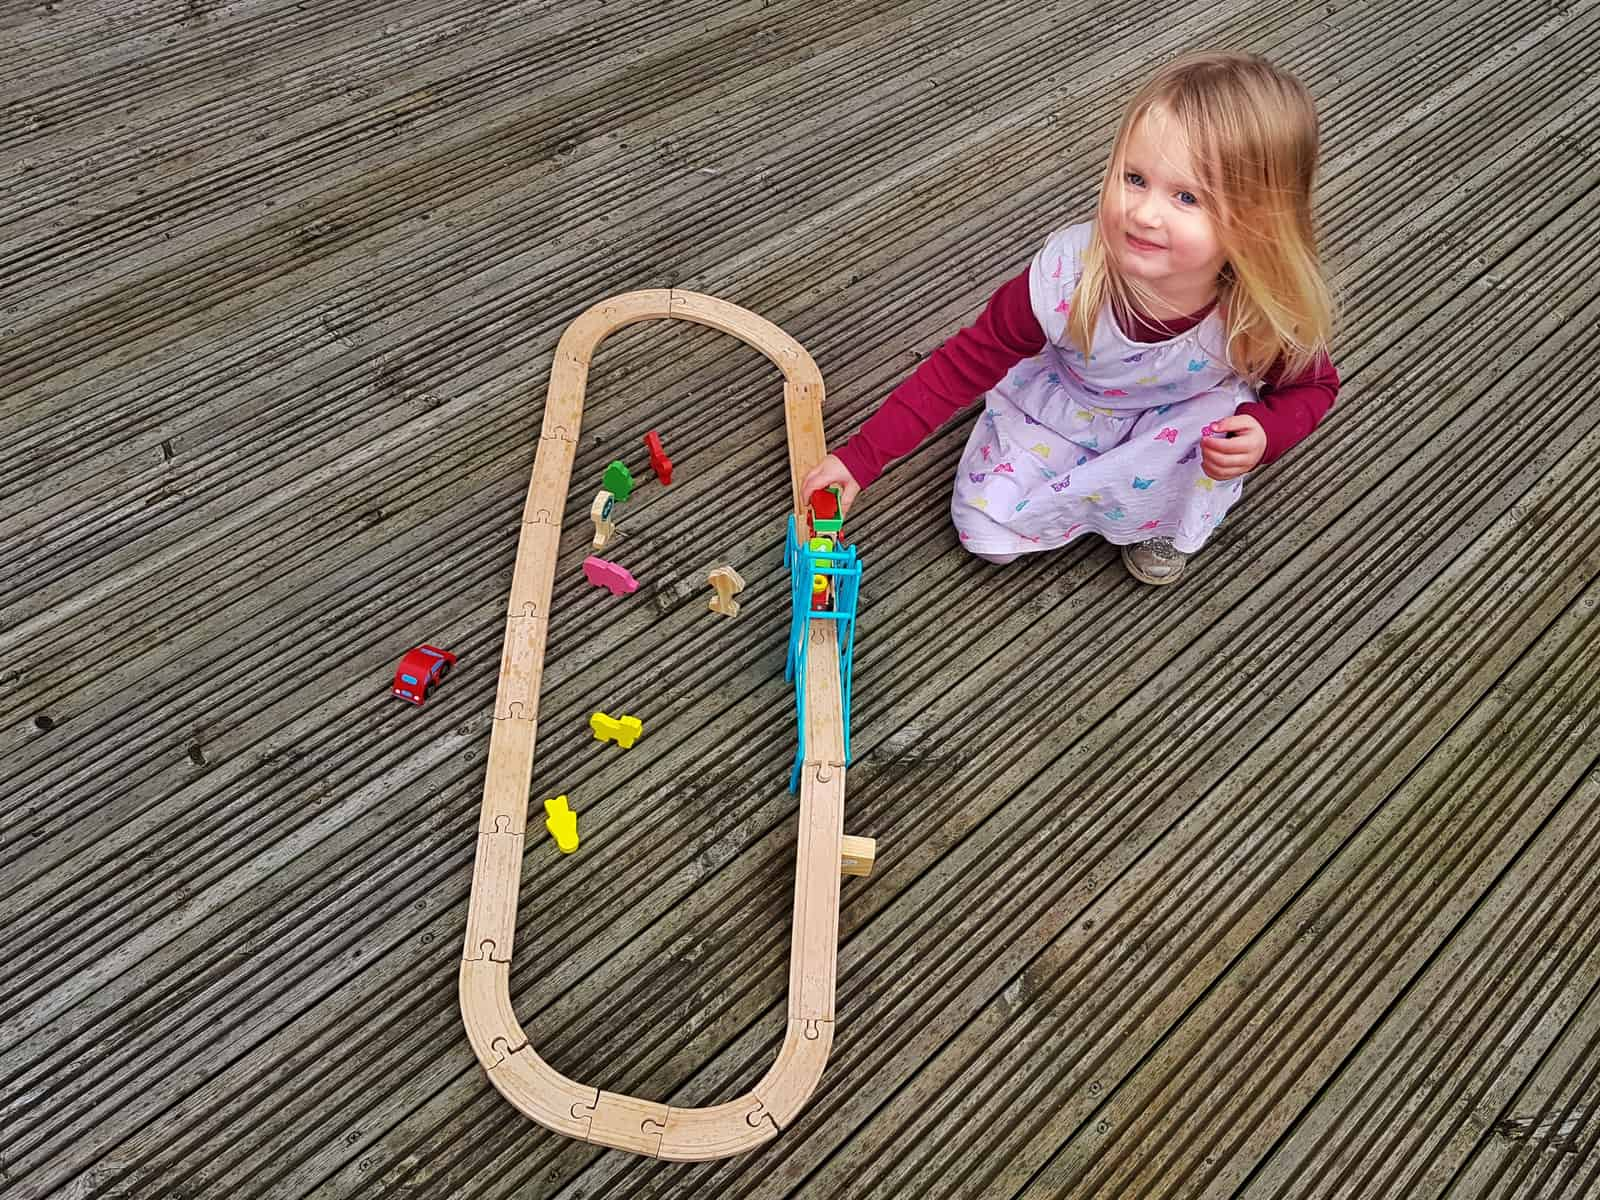 3 year old girl with toy trains on track